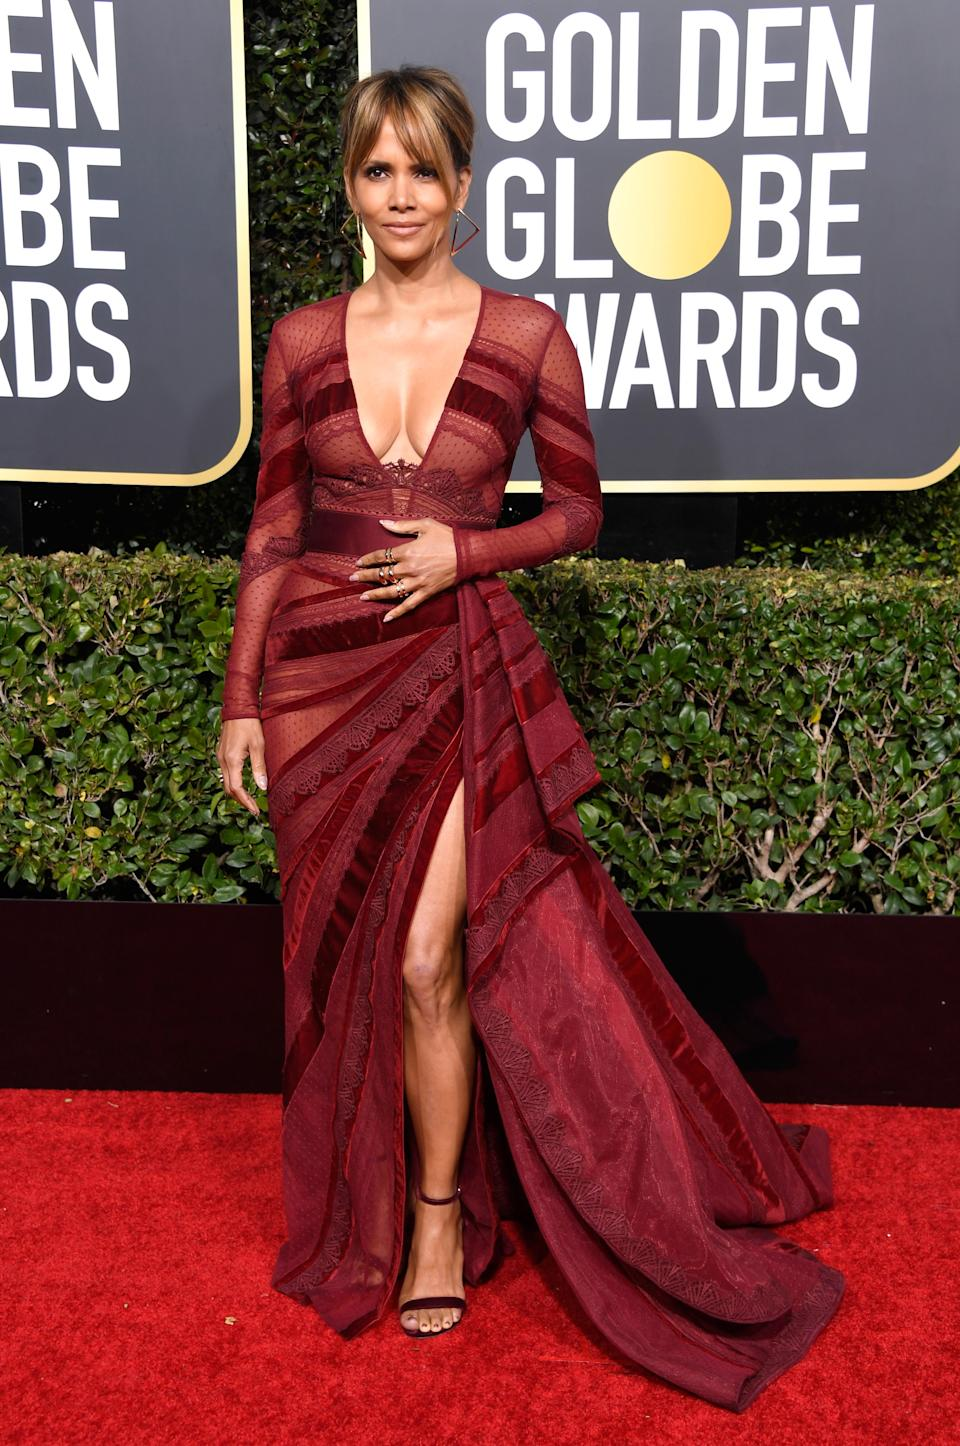 <p>The 52-year-old Oscar winner wowed the crowd in a burgundy dress by Zuhair Murad.<br>Image via Getty Images. </p>